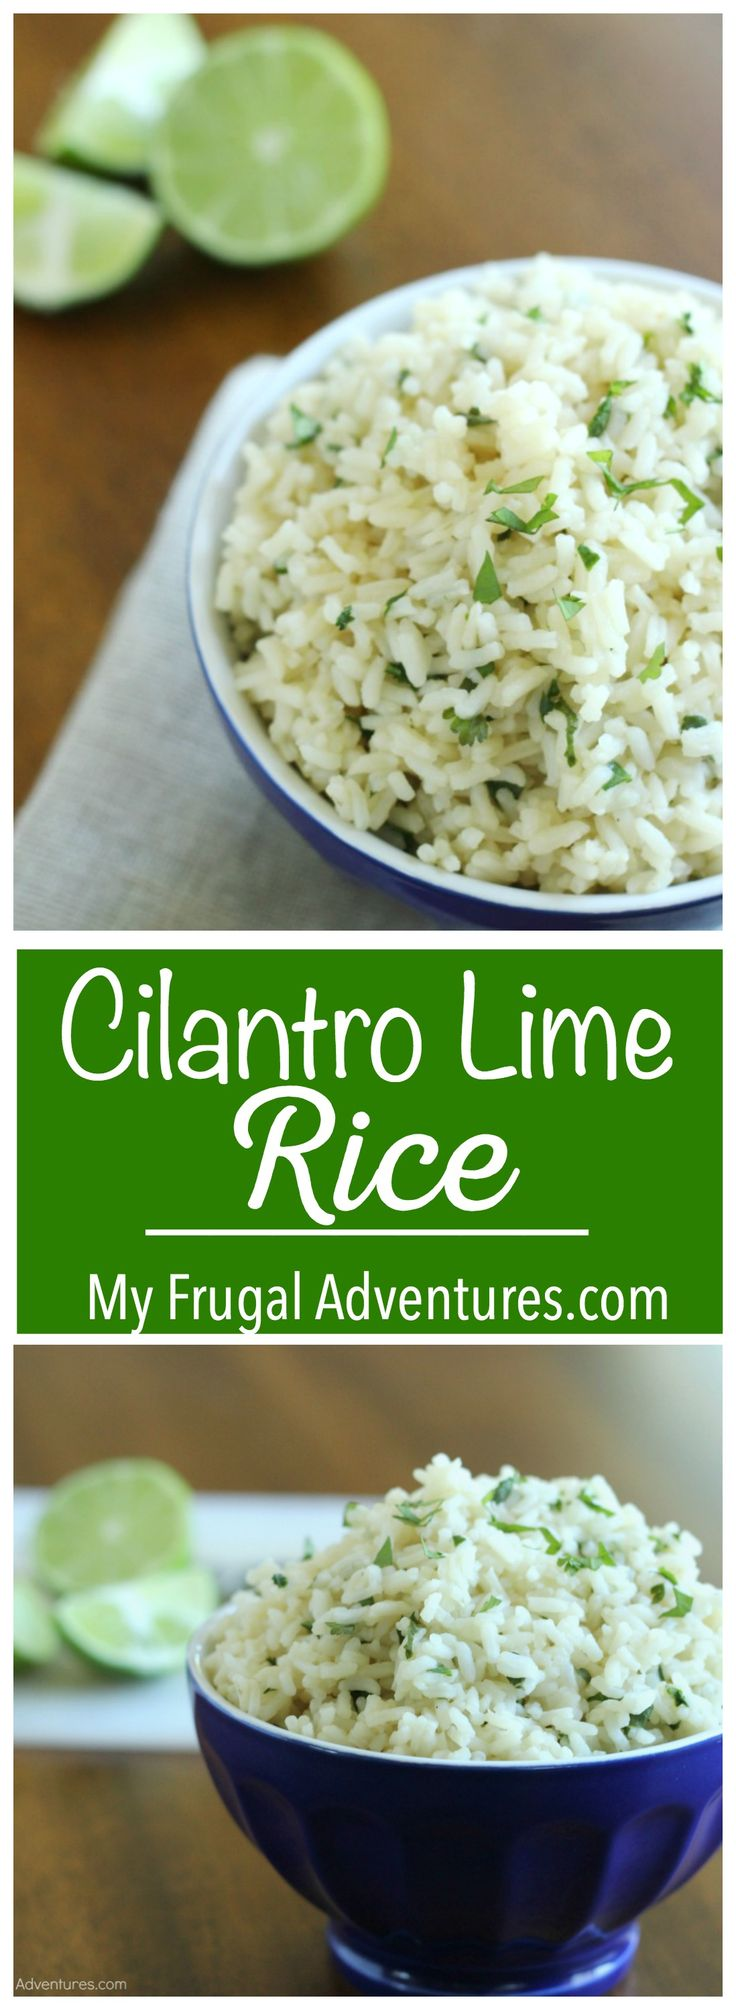 Copycat Chipotle Cilantro Lime Rice Recipe- so simple and so delicious!  This comes together in just minutes- perfect weekday meal idea.